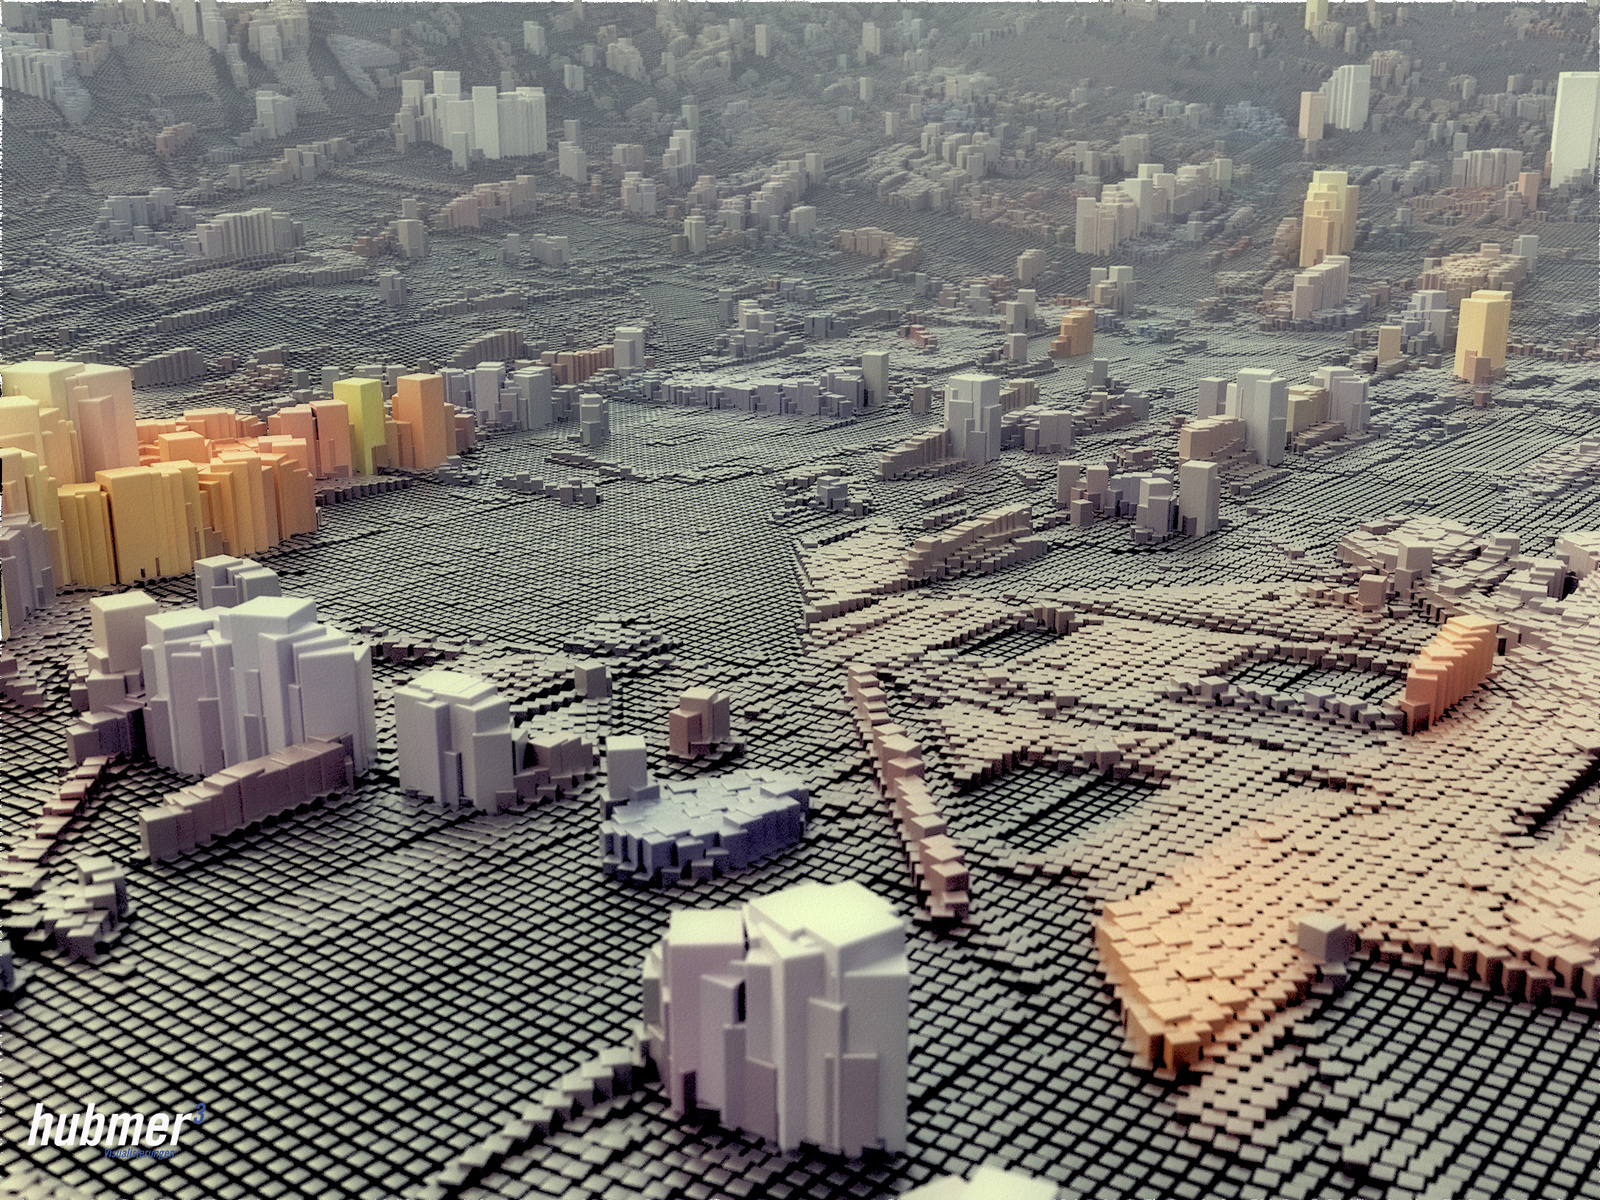 Generated City from Original Image